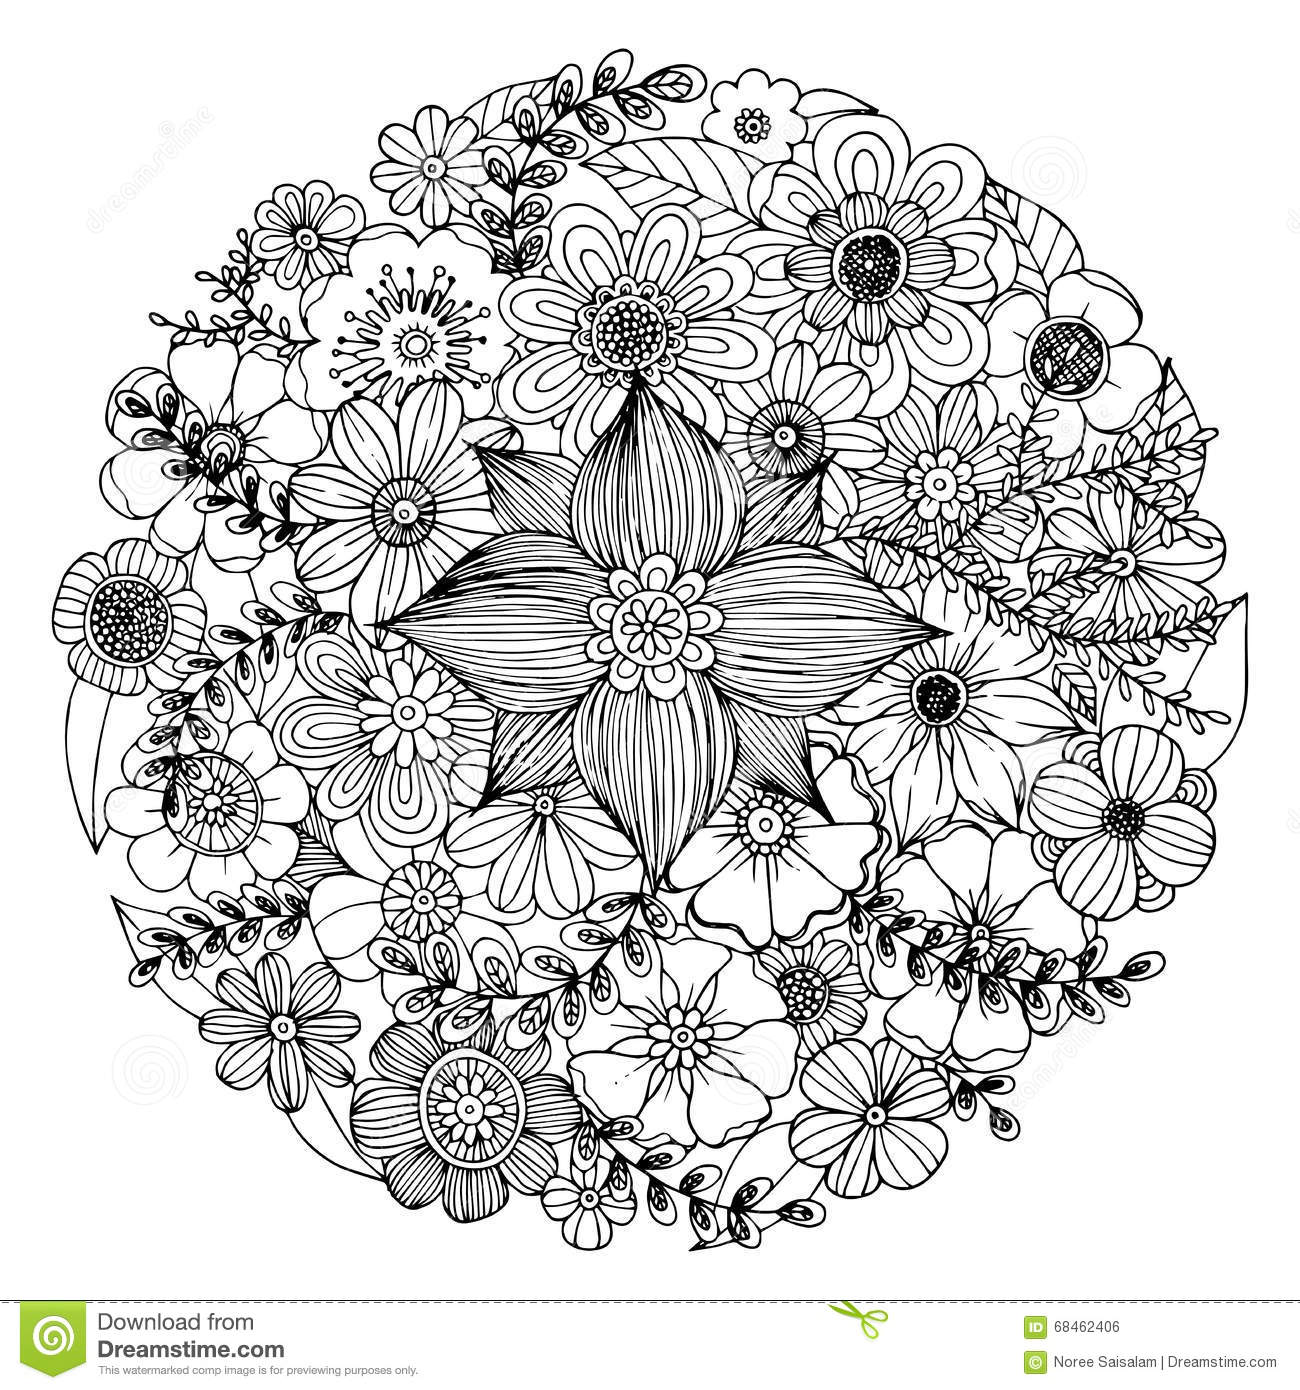 Flower Doodle Circle Vector Stock Vector - Illustration Of Coloring Vintage 68462406